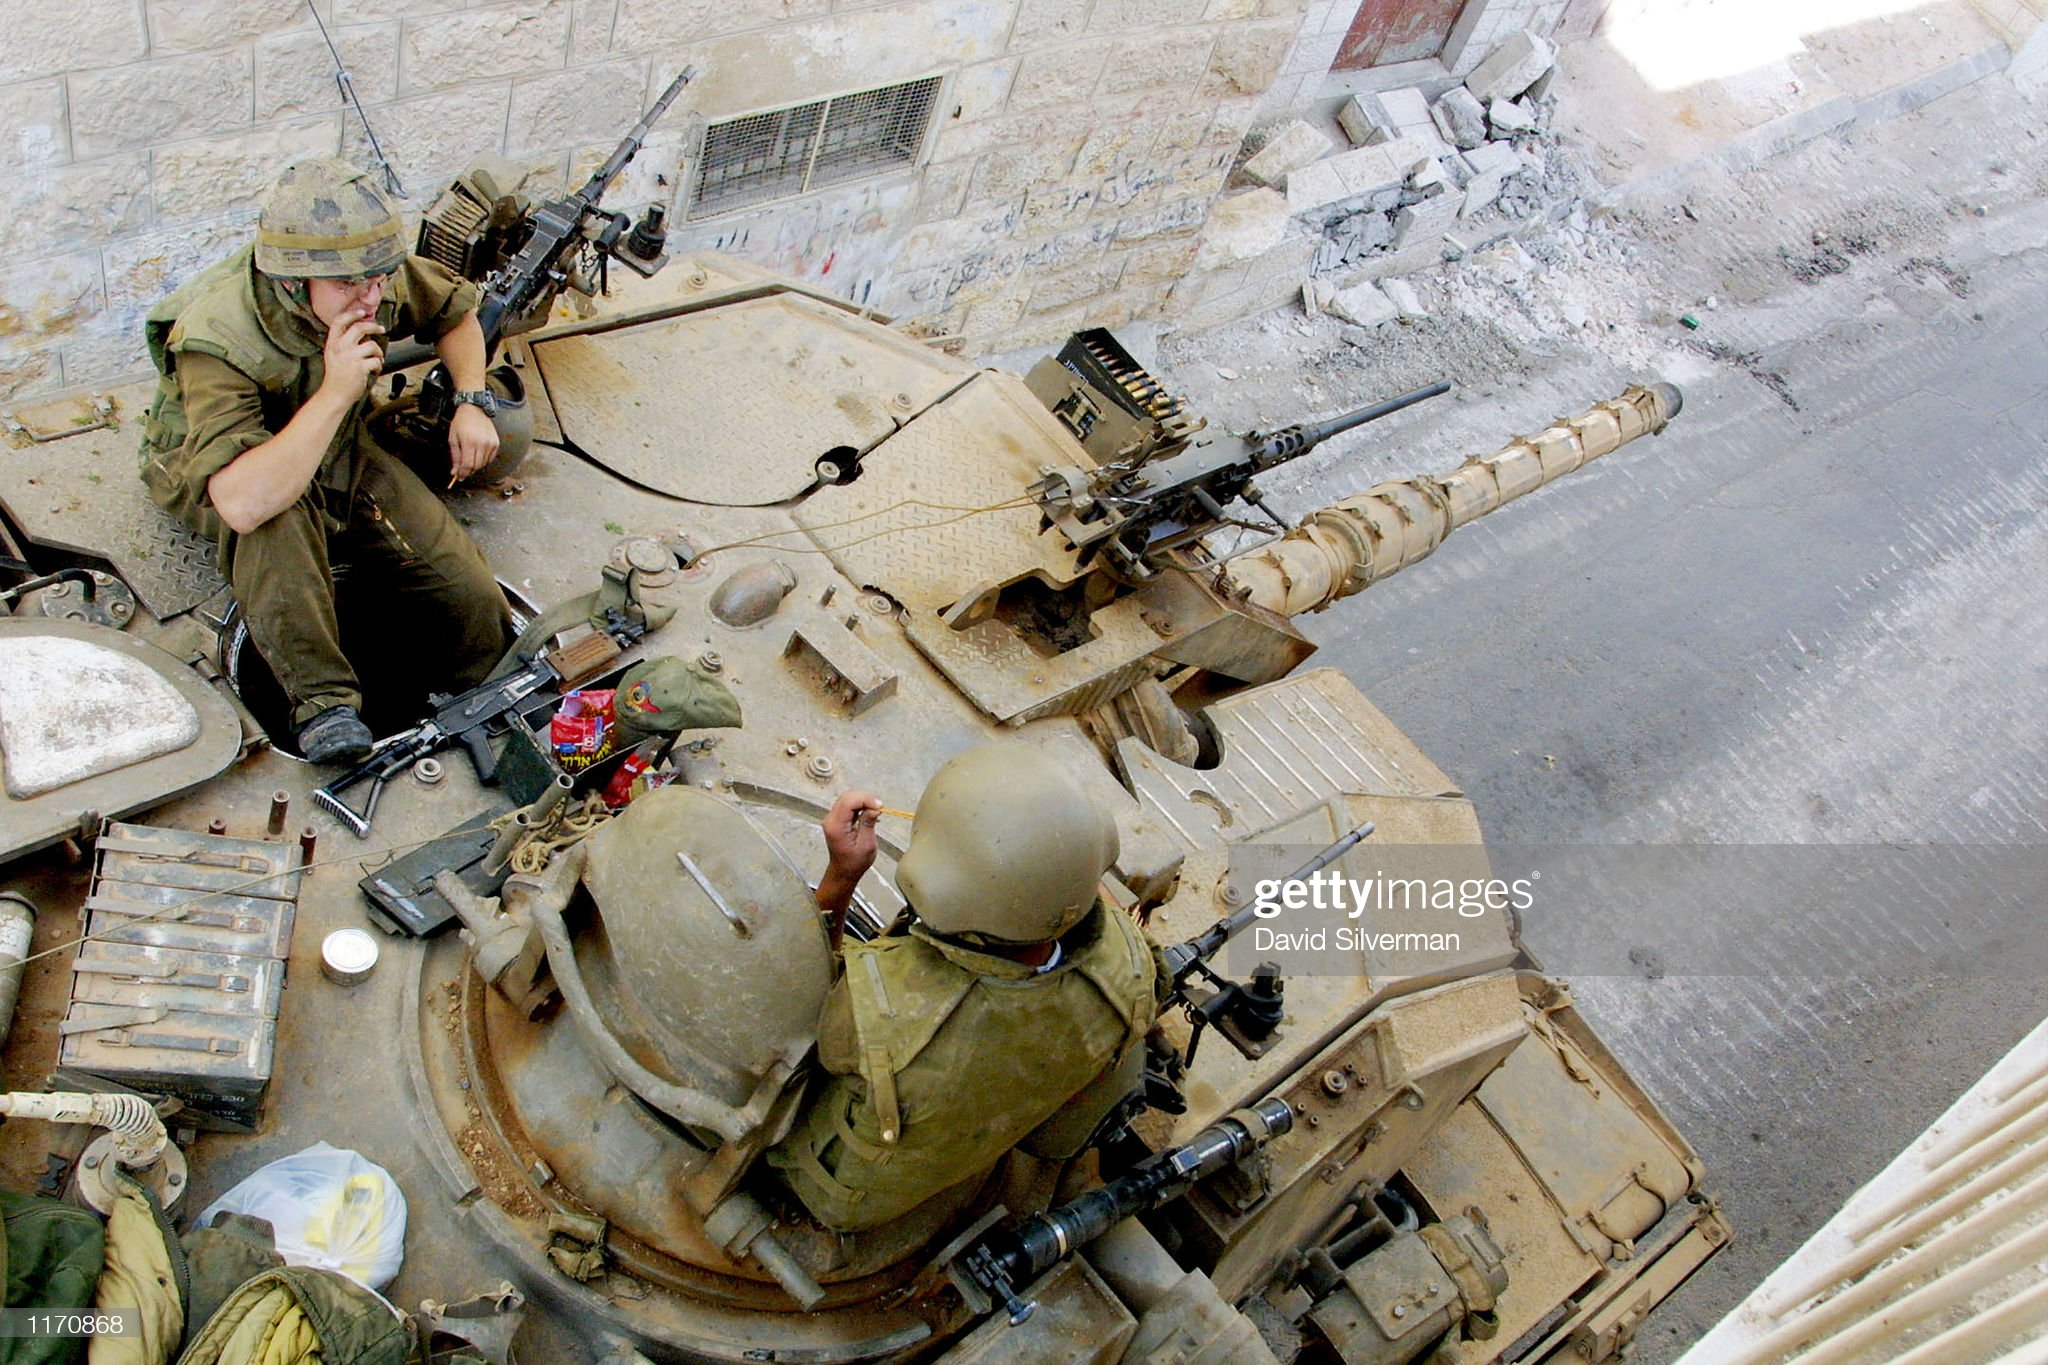 https://media.gettyimages.com/photos/israeli-soldiers-keep-their-turret-aimed-down-a-beit-jala-alleyway-picture-id1170868?s=2048x2048